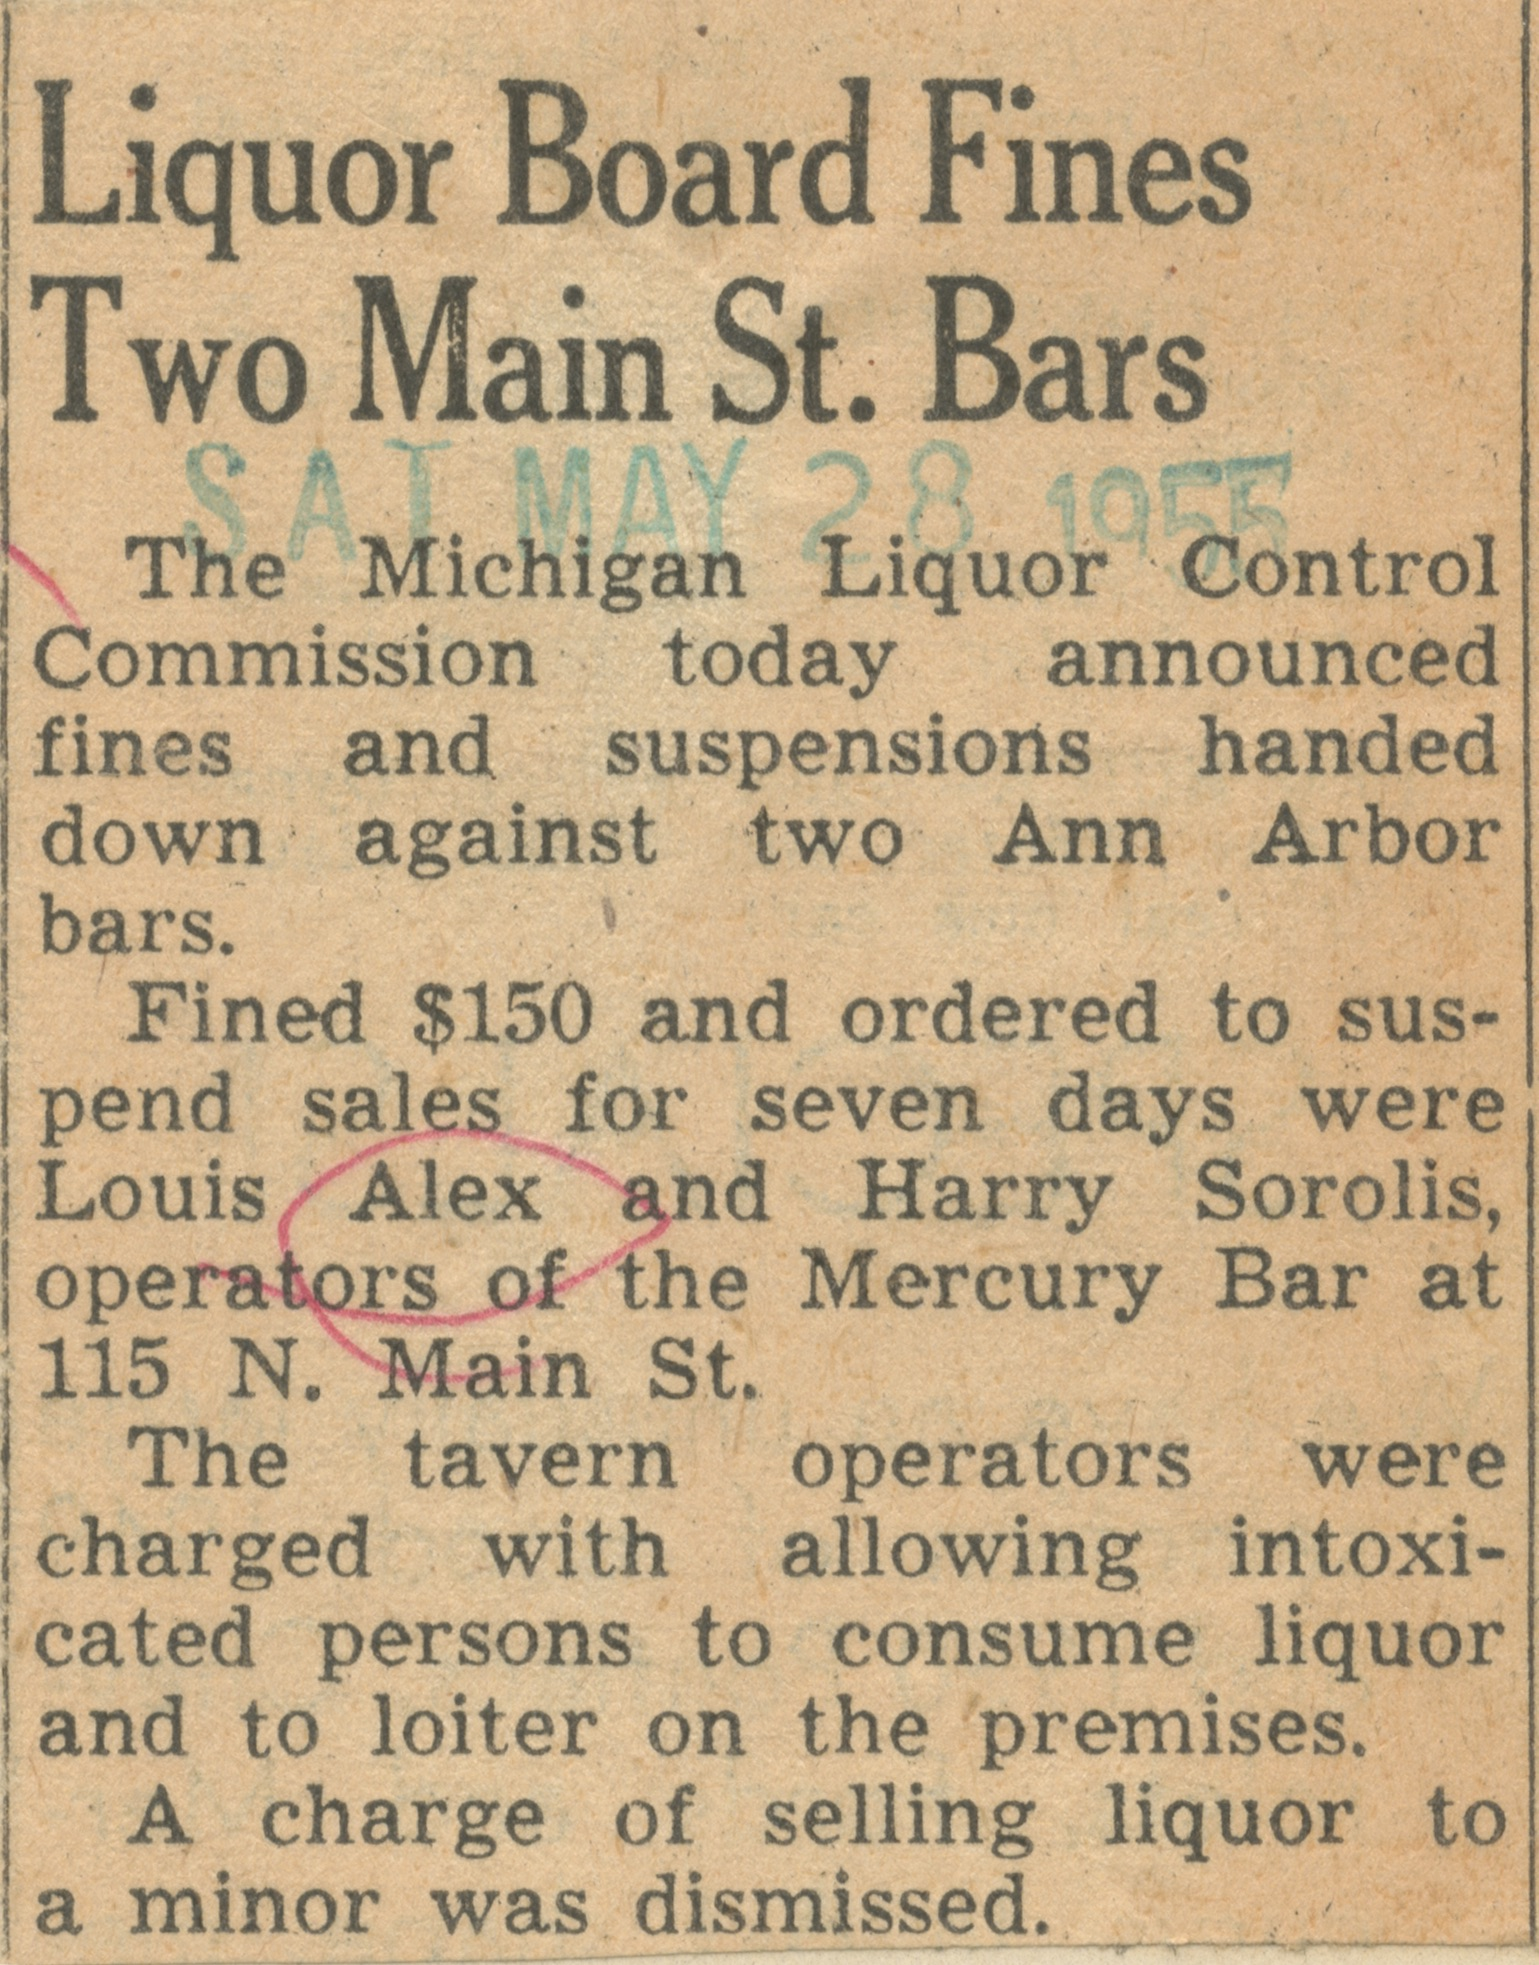 Liquor Board Fines Two Main St. Bars image